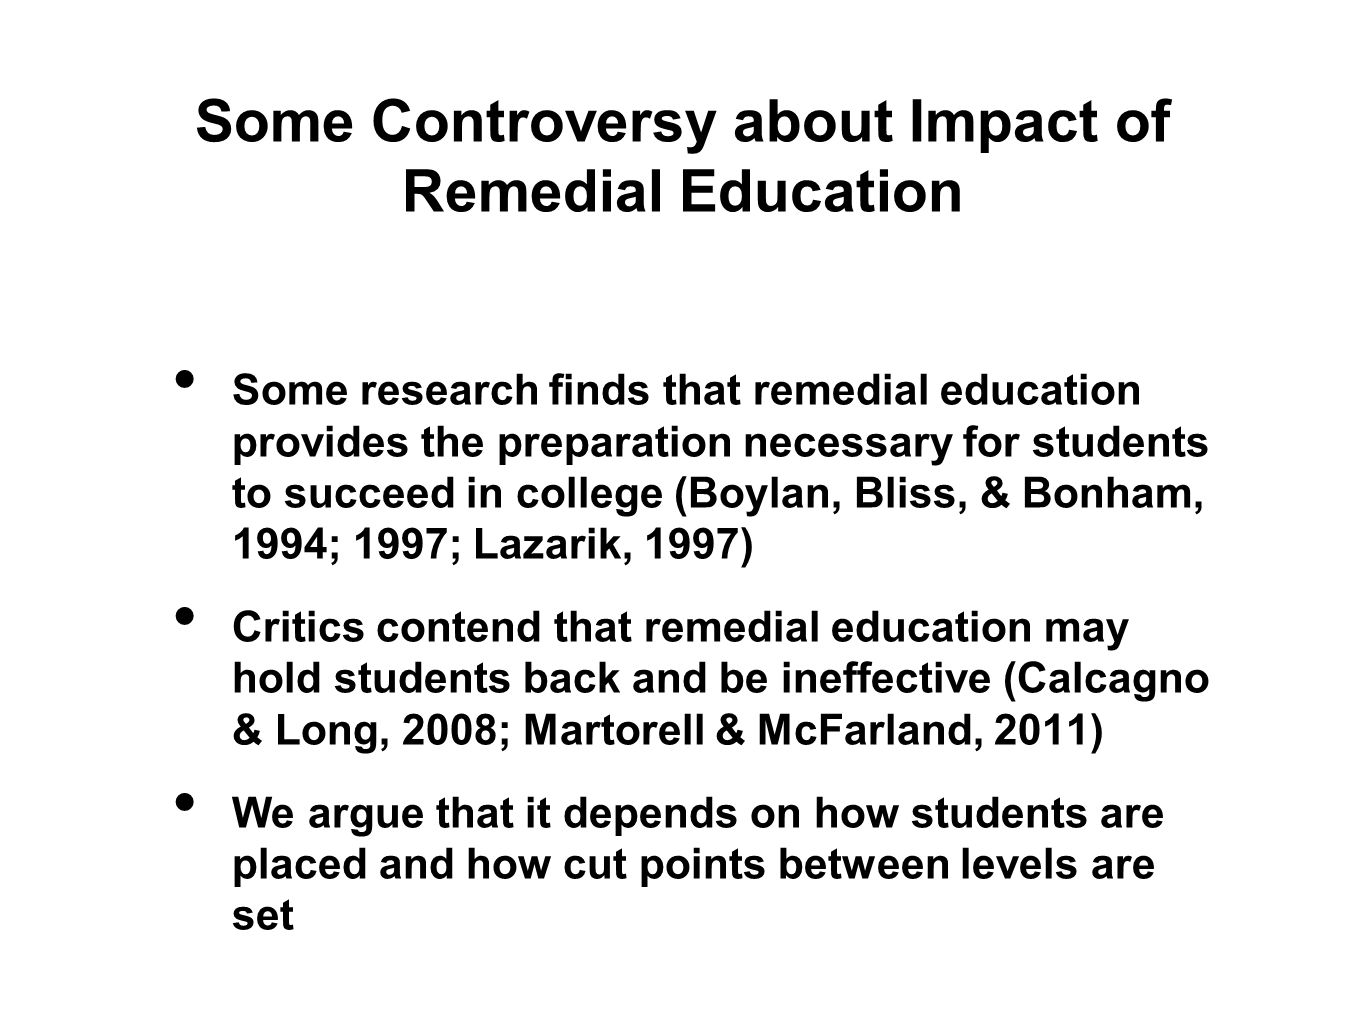 Some Controversy about Impact of Remedial Education Some research finds that remedial education provides the preparation necessary for students to succeed in college (Boylan, Bliss, & Bonham, 1994; 1997; Lazarik, 1997) Critics contend that remedial education may hold students back and be ineffective (Calcagno & Long, 2008; Martorell & McFarland, 2011) We argue that it depends on how students are placed and how cut points between levels are set